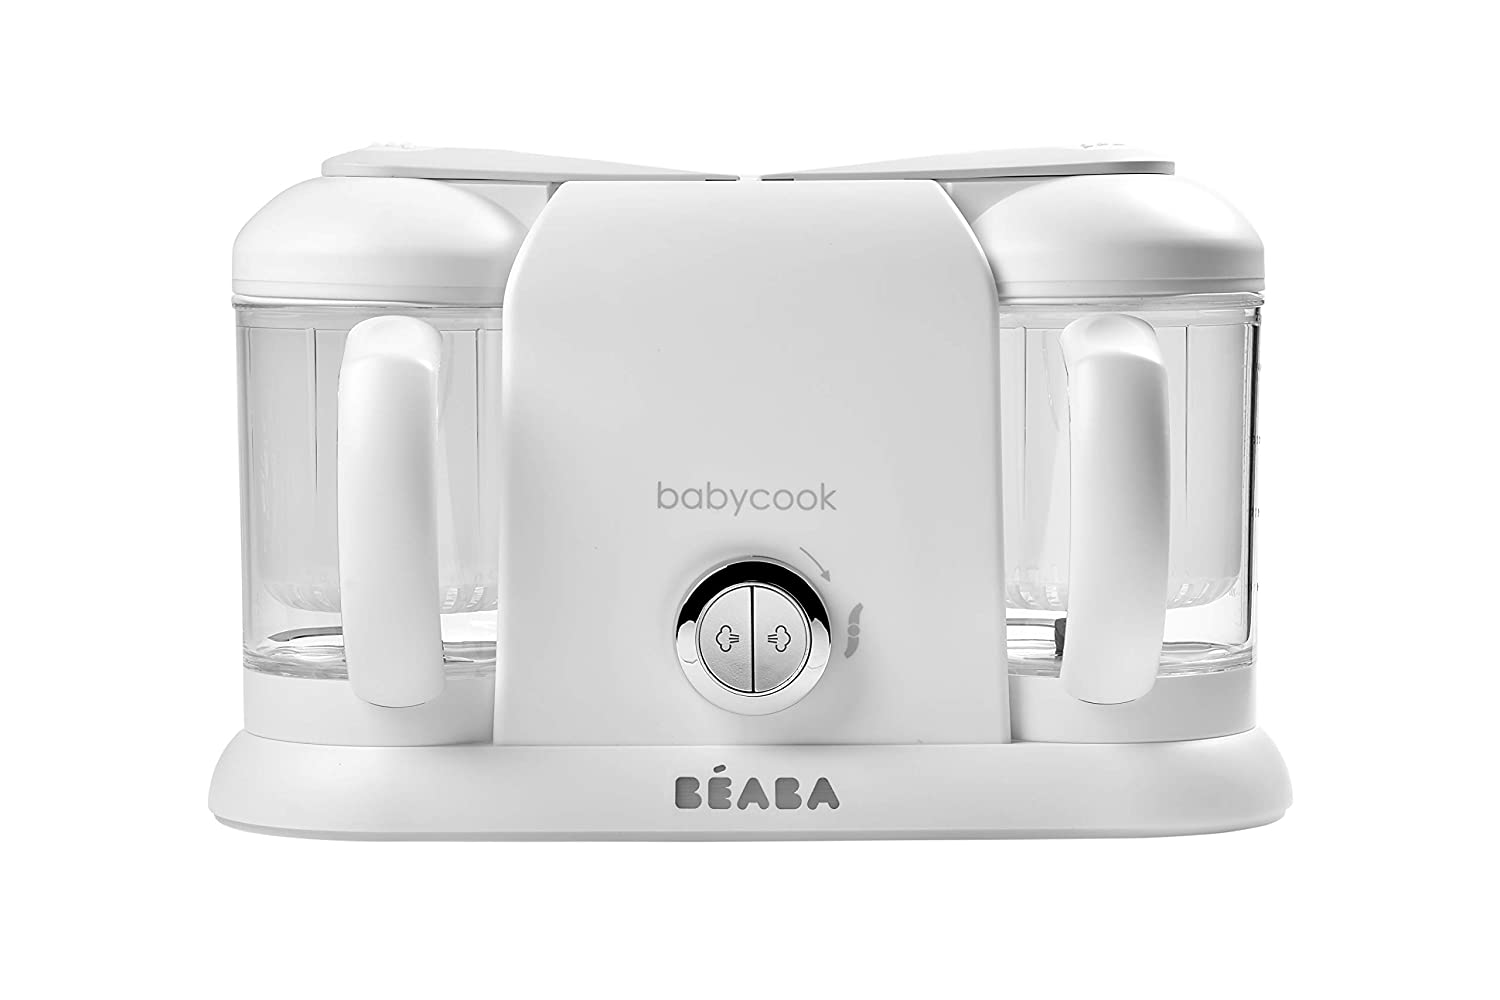 BEABA Babycook Duo Recommended 4 in 1 Maker Food Processor Baby New Orleans Mall